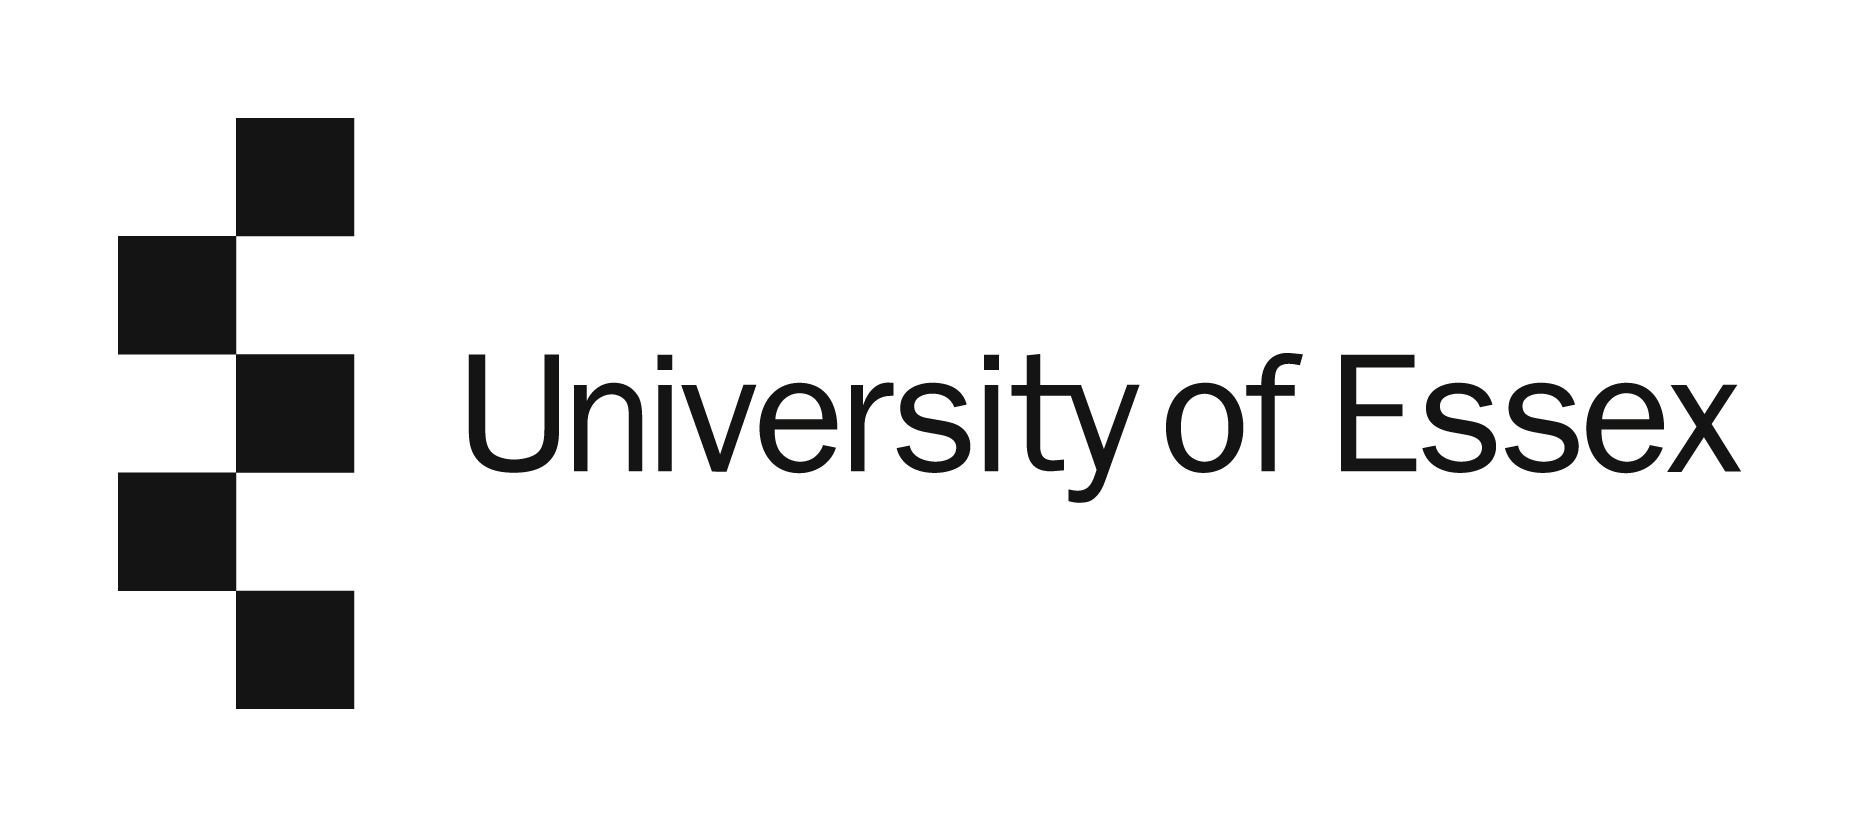 Logo van de University of Essex